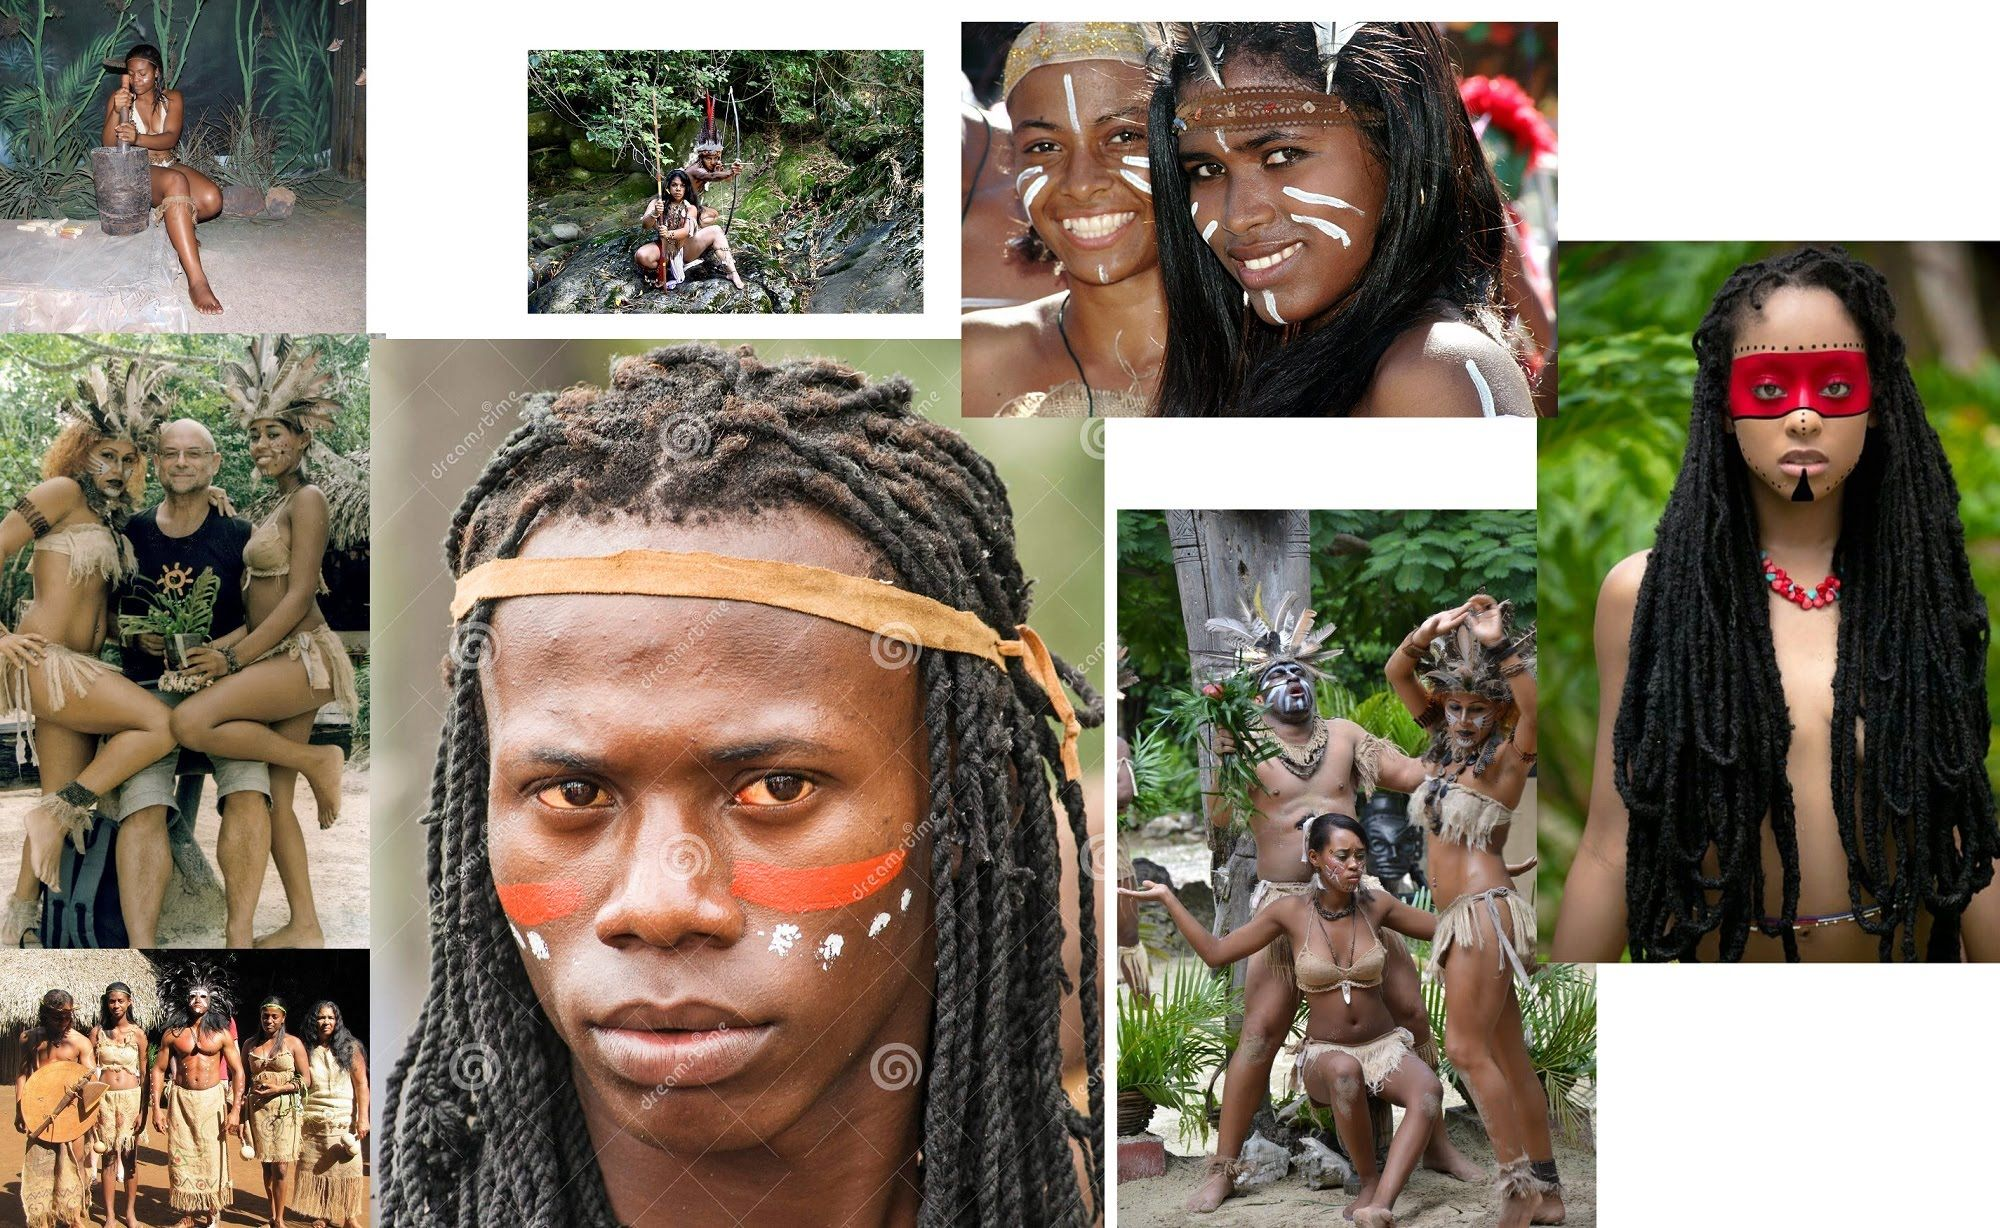 The Black Tribes of the Caribbean | Black Taino Roots of ...